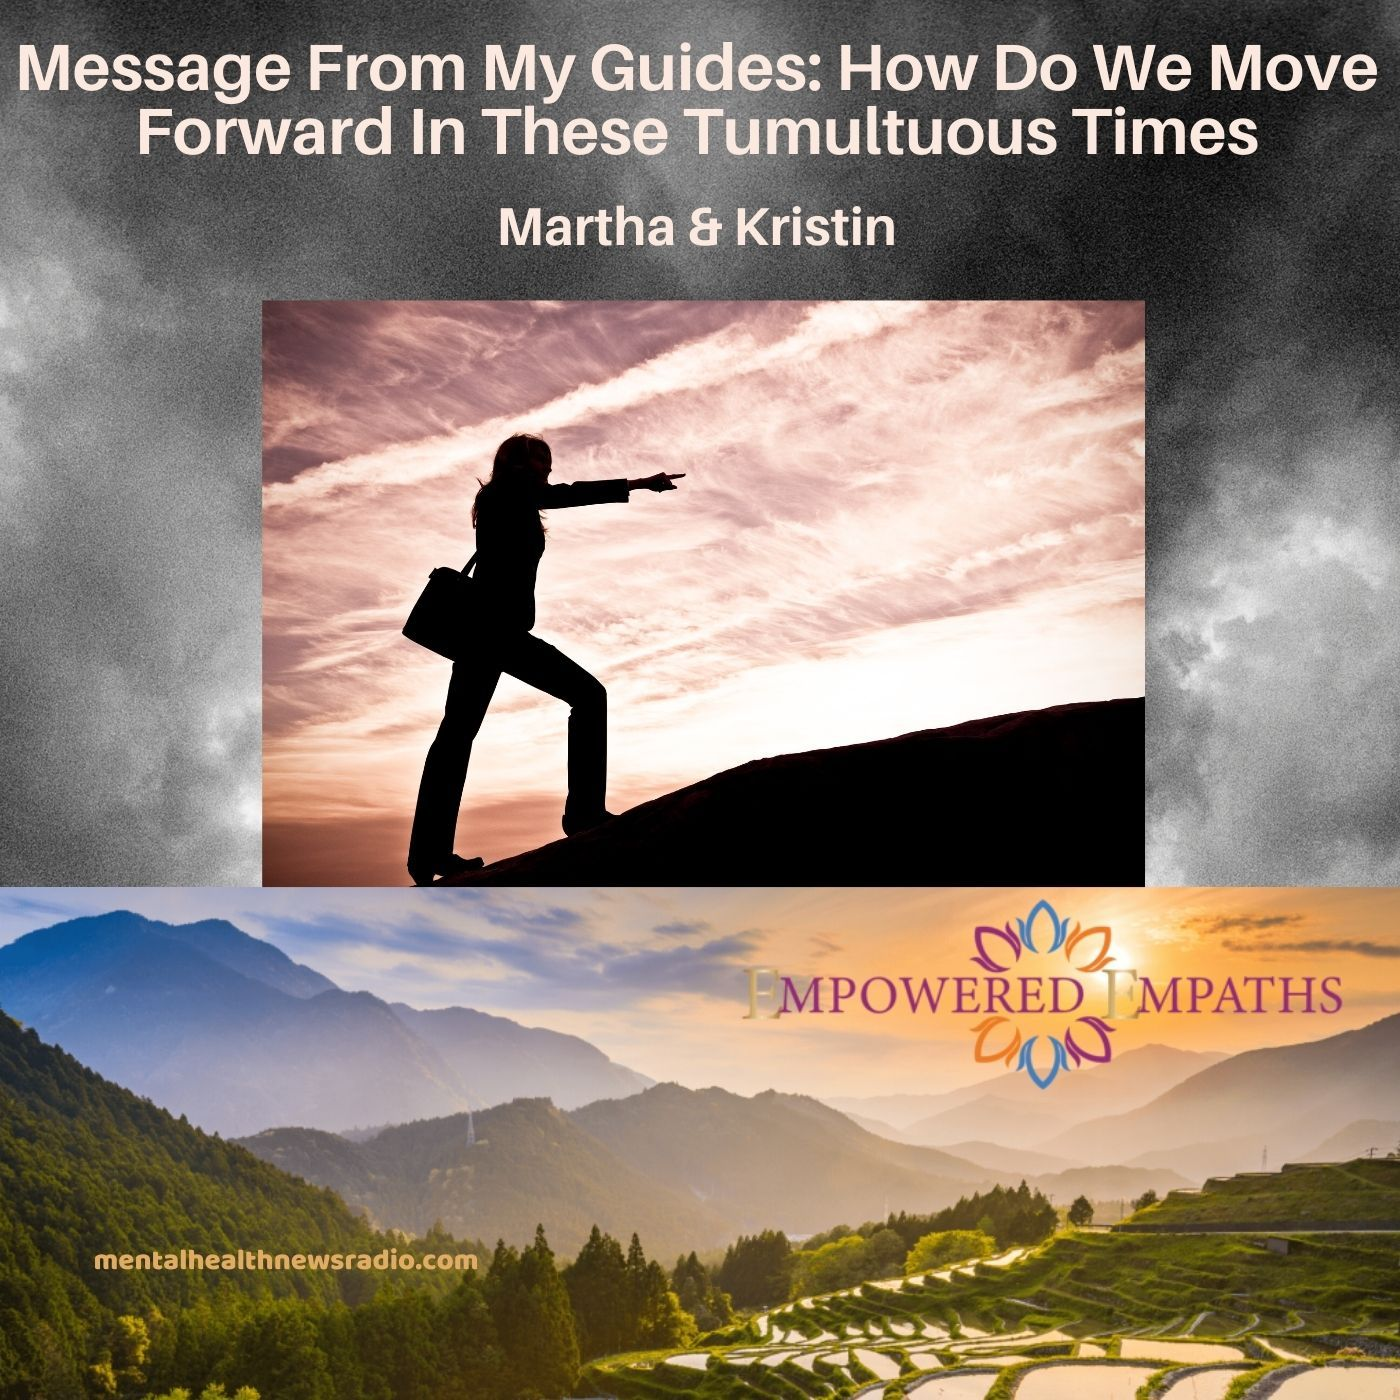 Message From My Guides: How Do We Move Forward In These Tumultuous Times